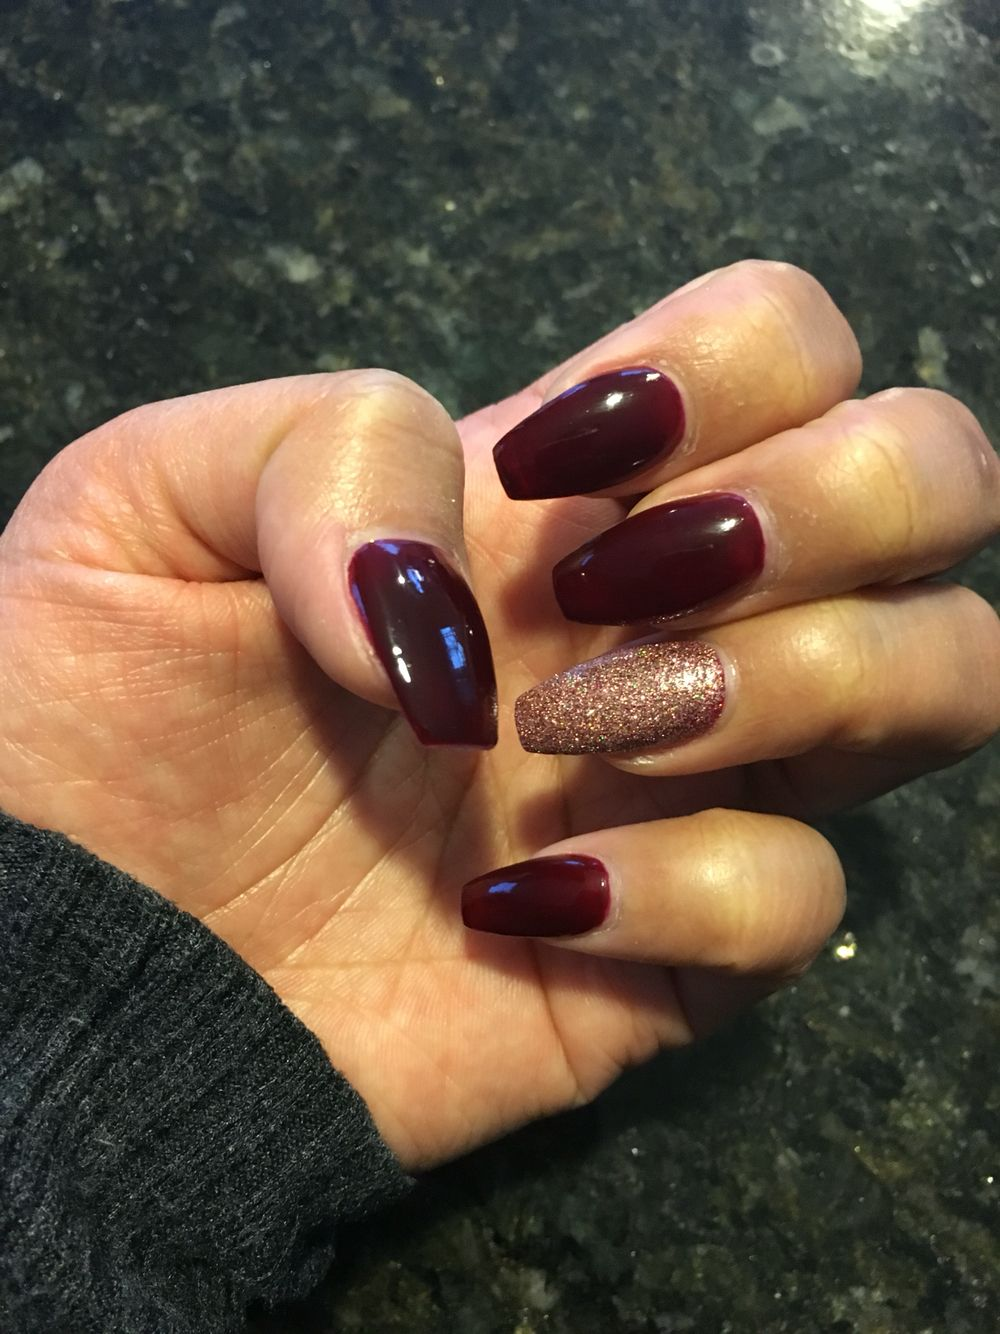 Burgundy coffin nails | Nails in 2018 | Pinterest | Nails ...